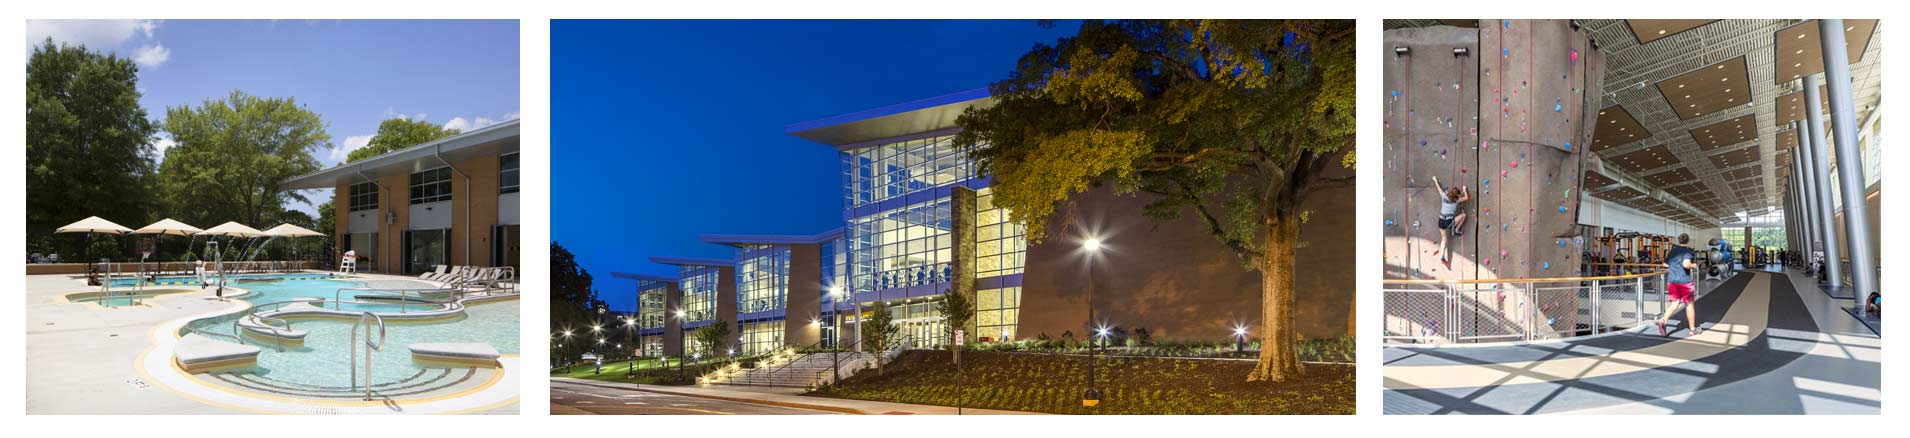 KSU Events and Venue Management Student Recreation and Activities Center Header